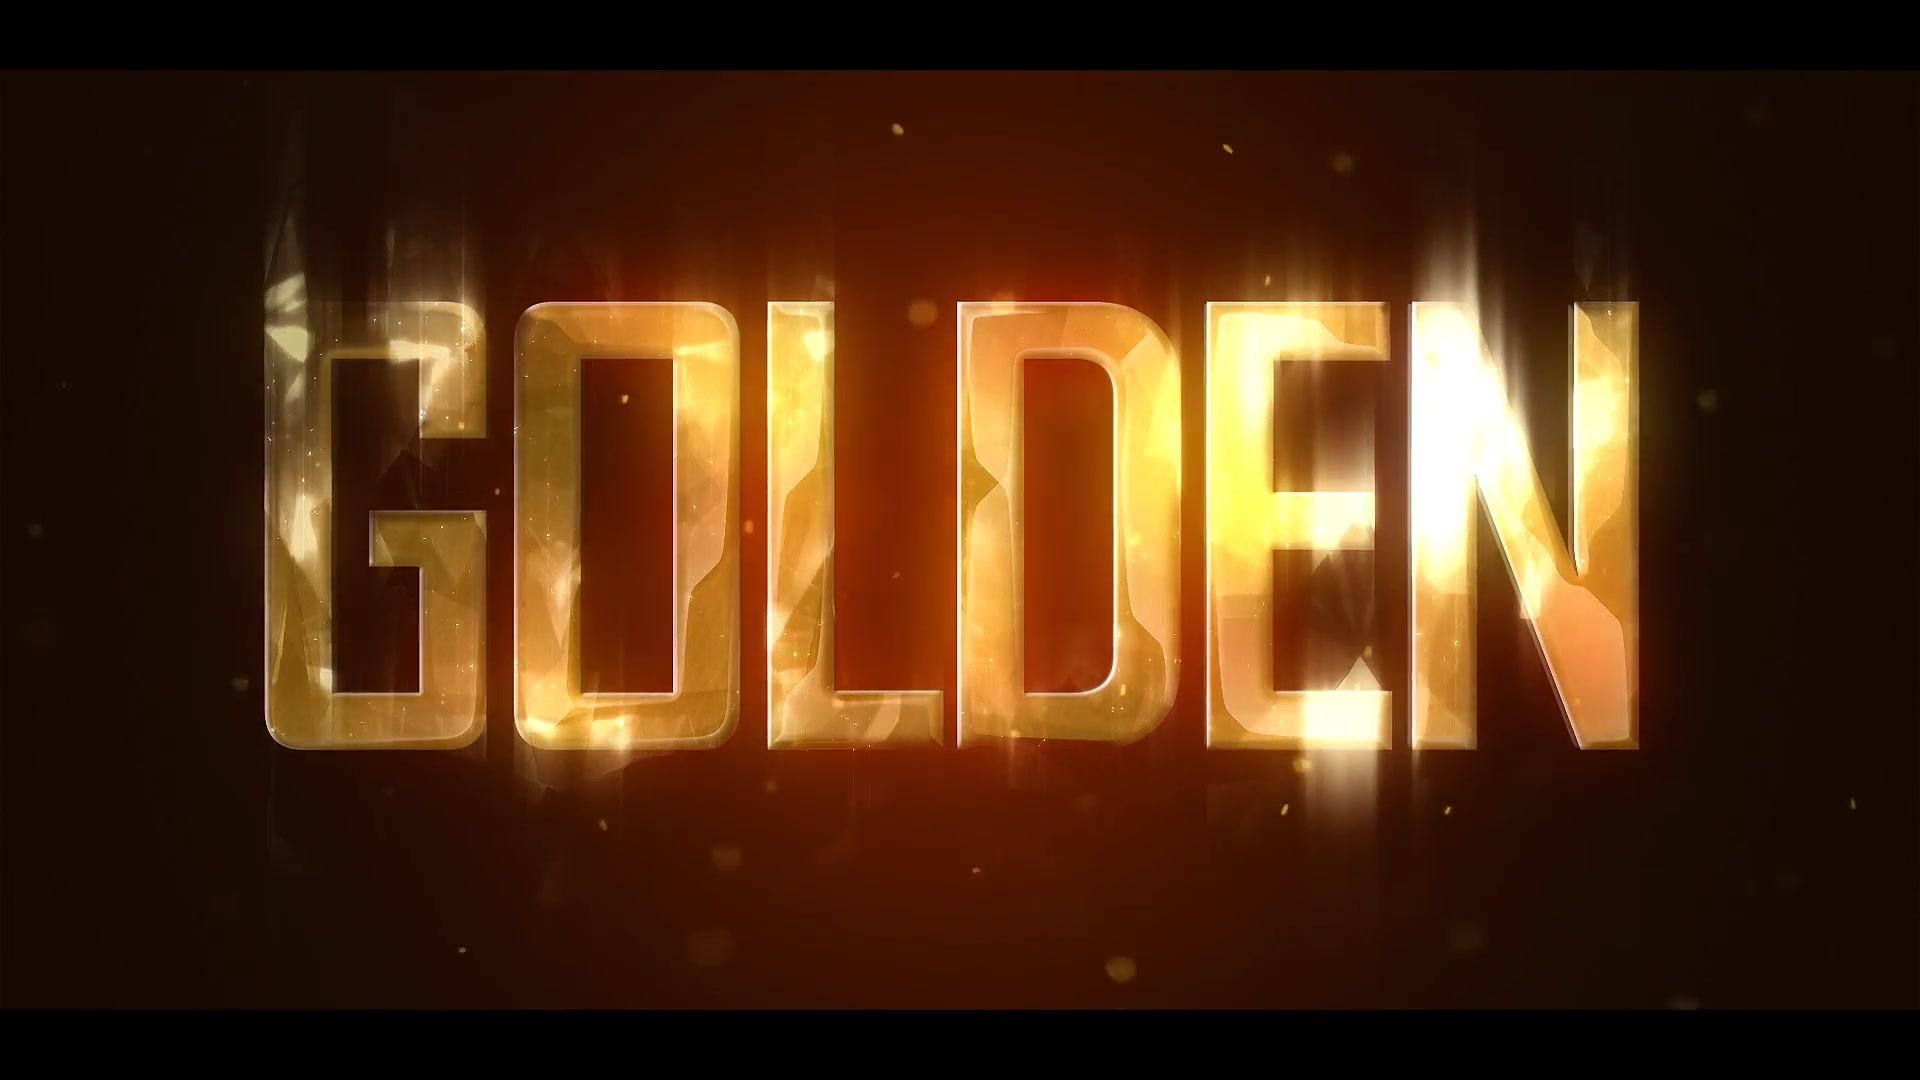 Golden Brilliant Logo Reveal Videohive 19435270 After Effects Image 3